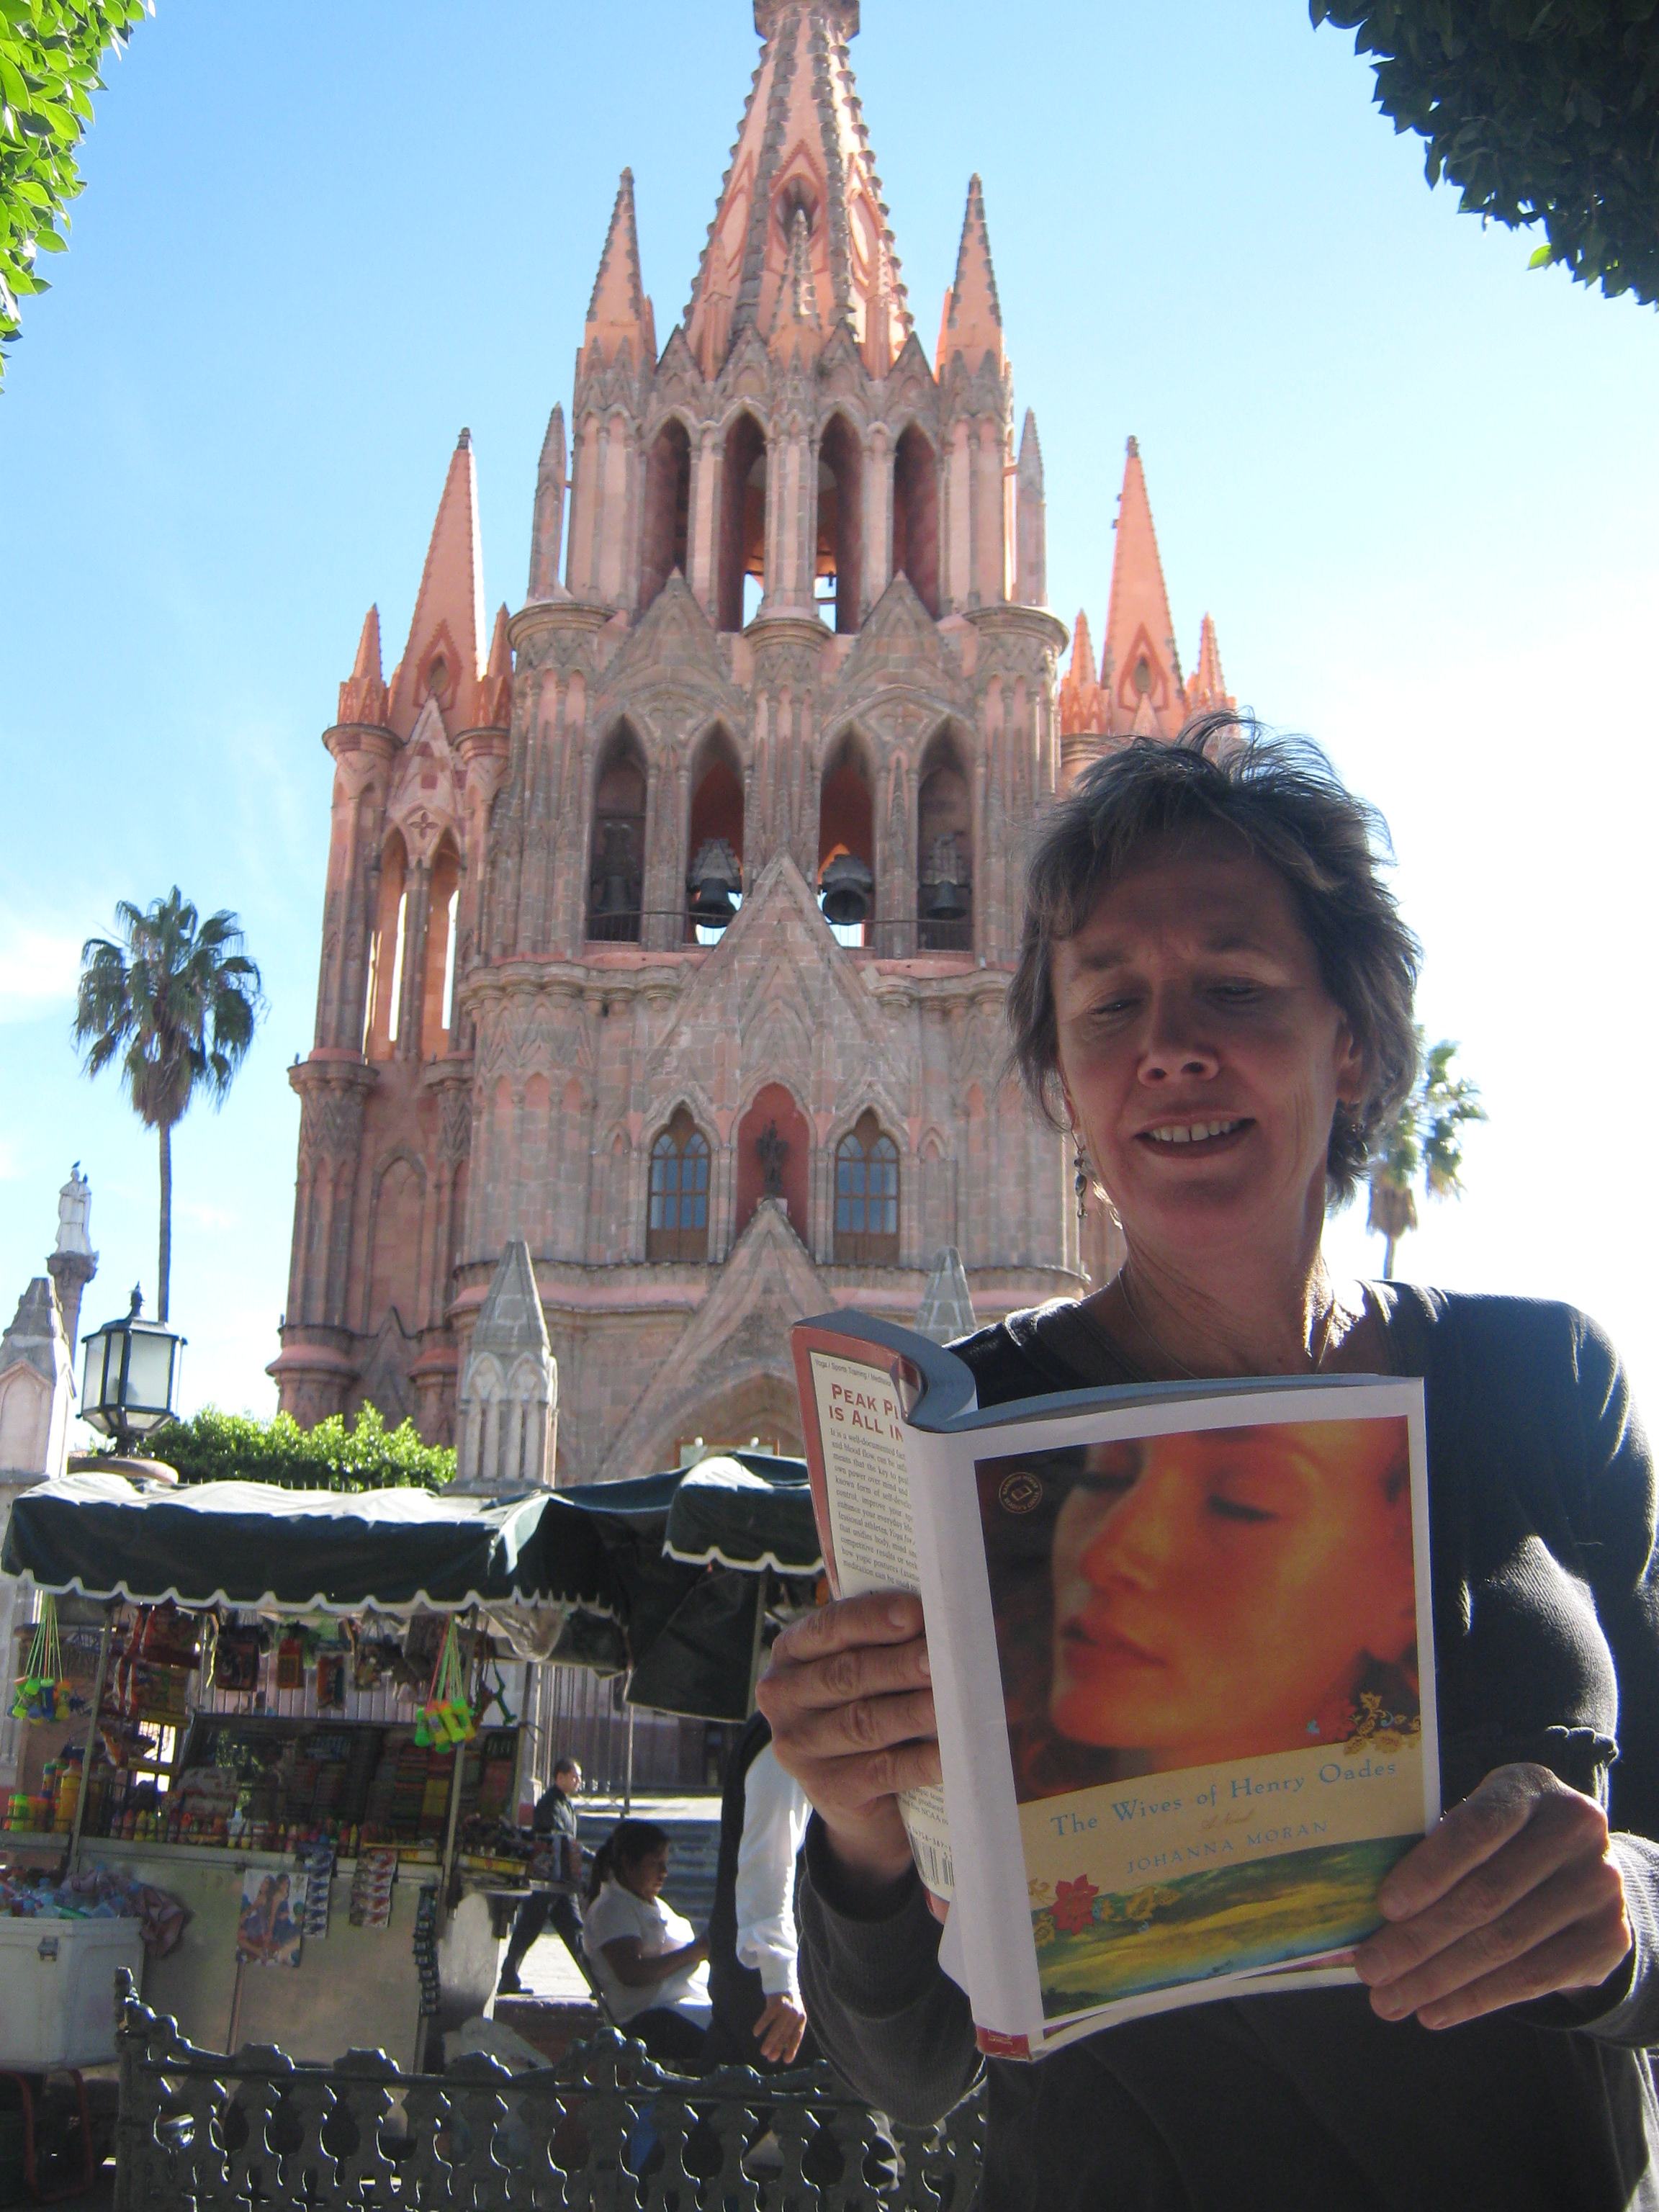 "READING ""WIVES"" AT SAN MIGUEL ALLENDE"